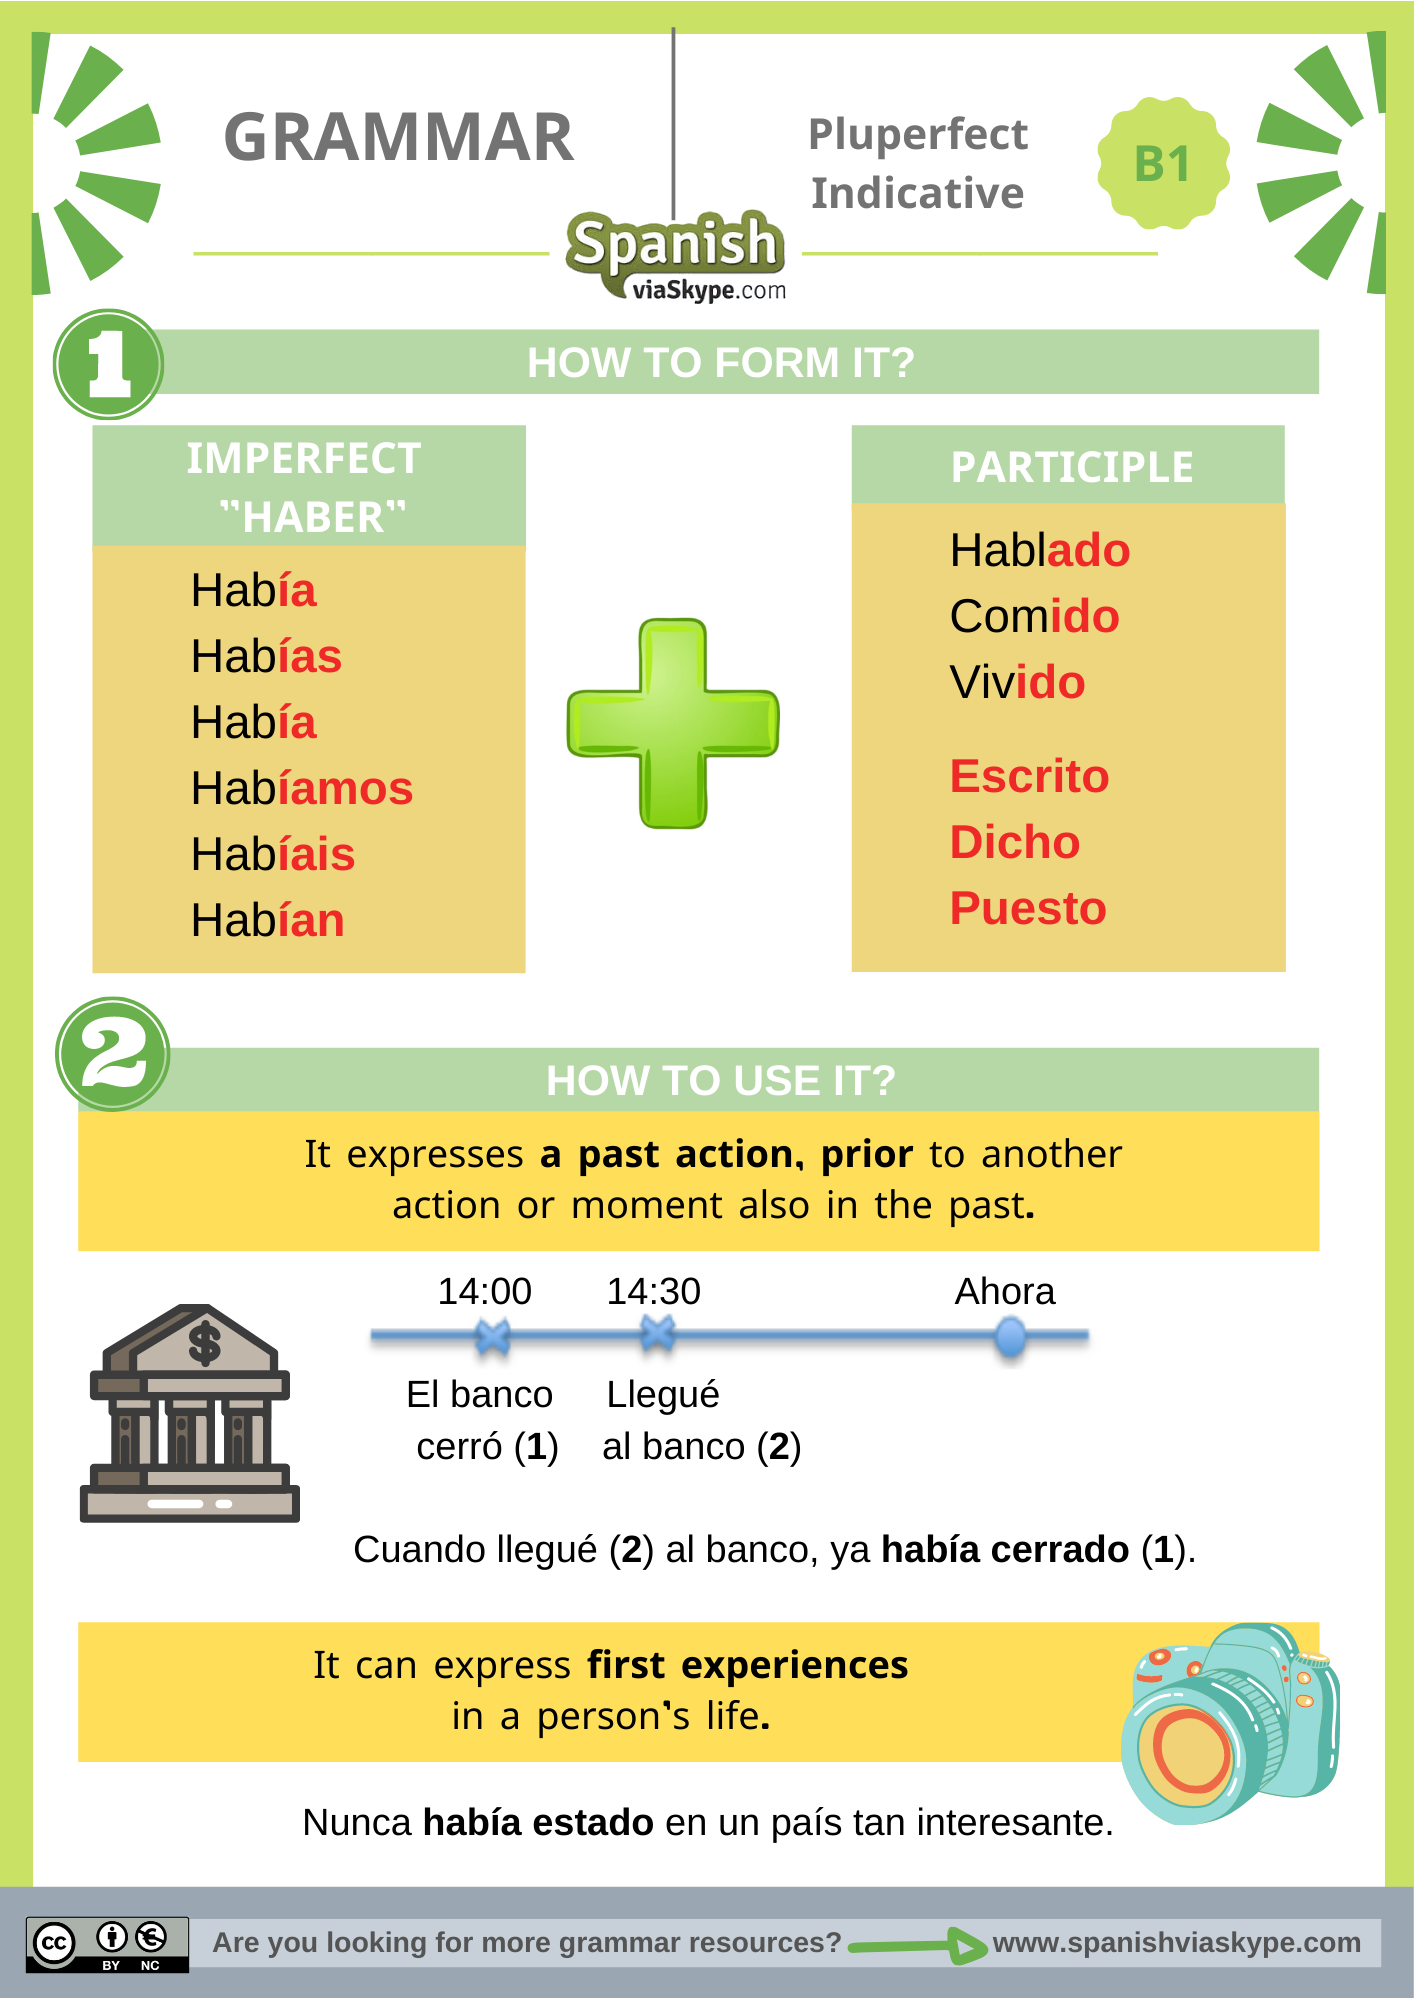 Infographic of the pluperfect indicative in Spanish